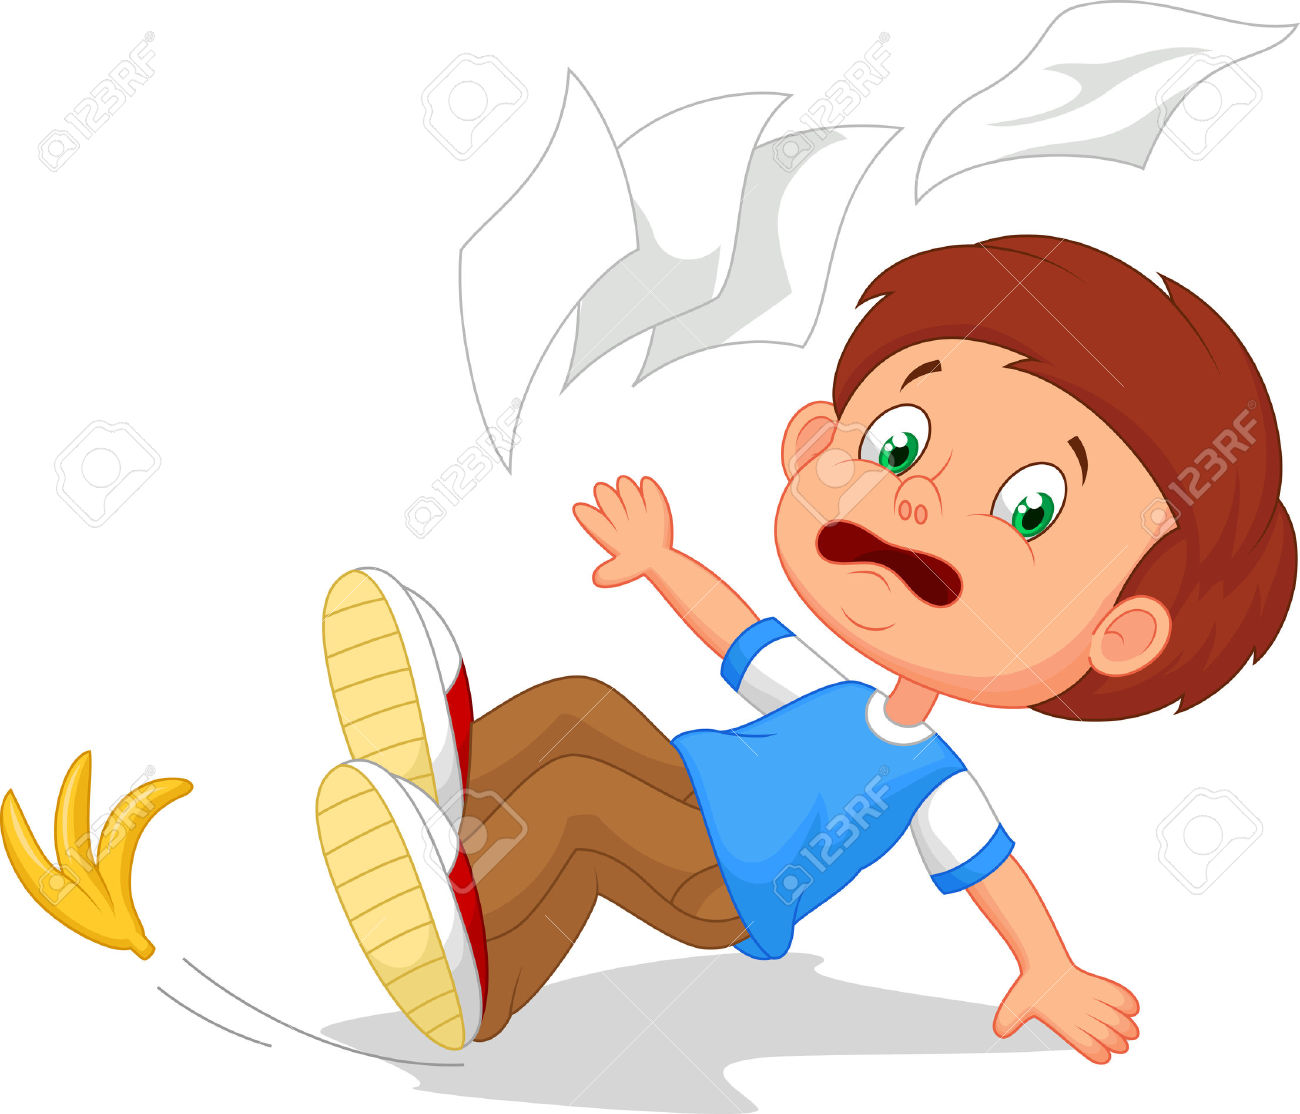 Clipart falling down.